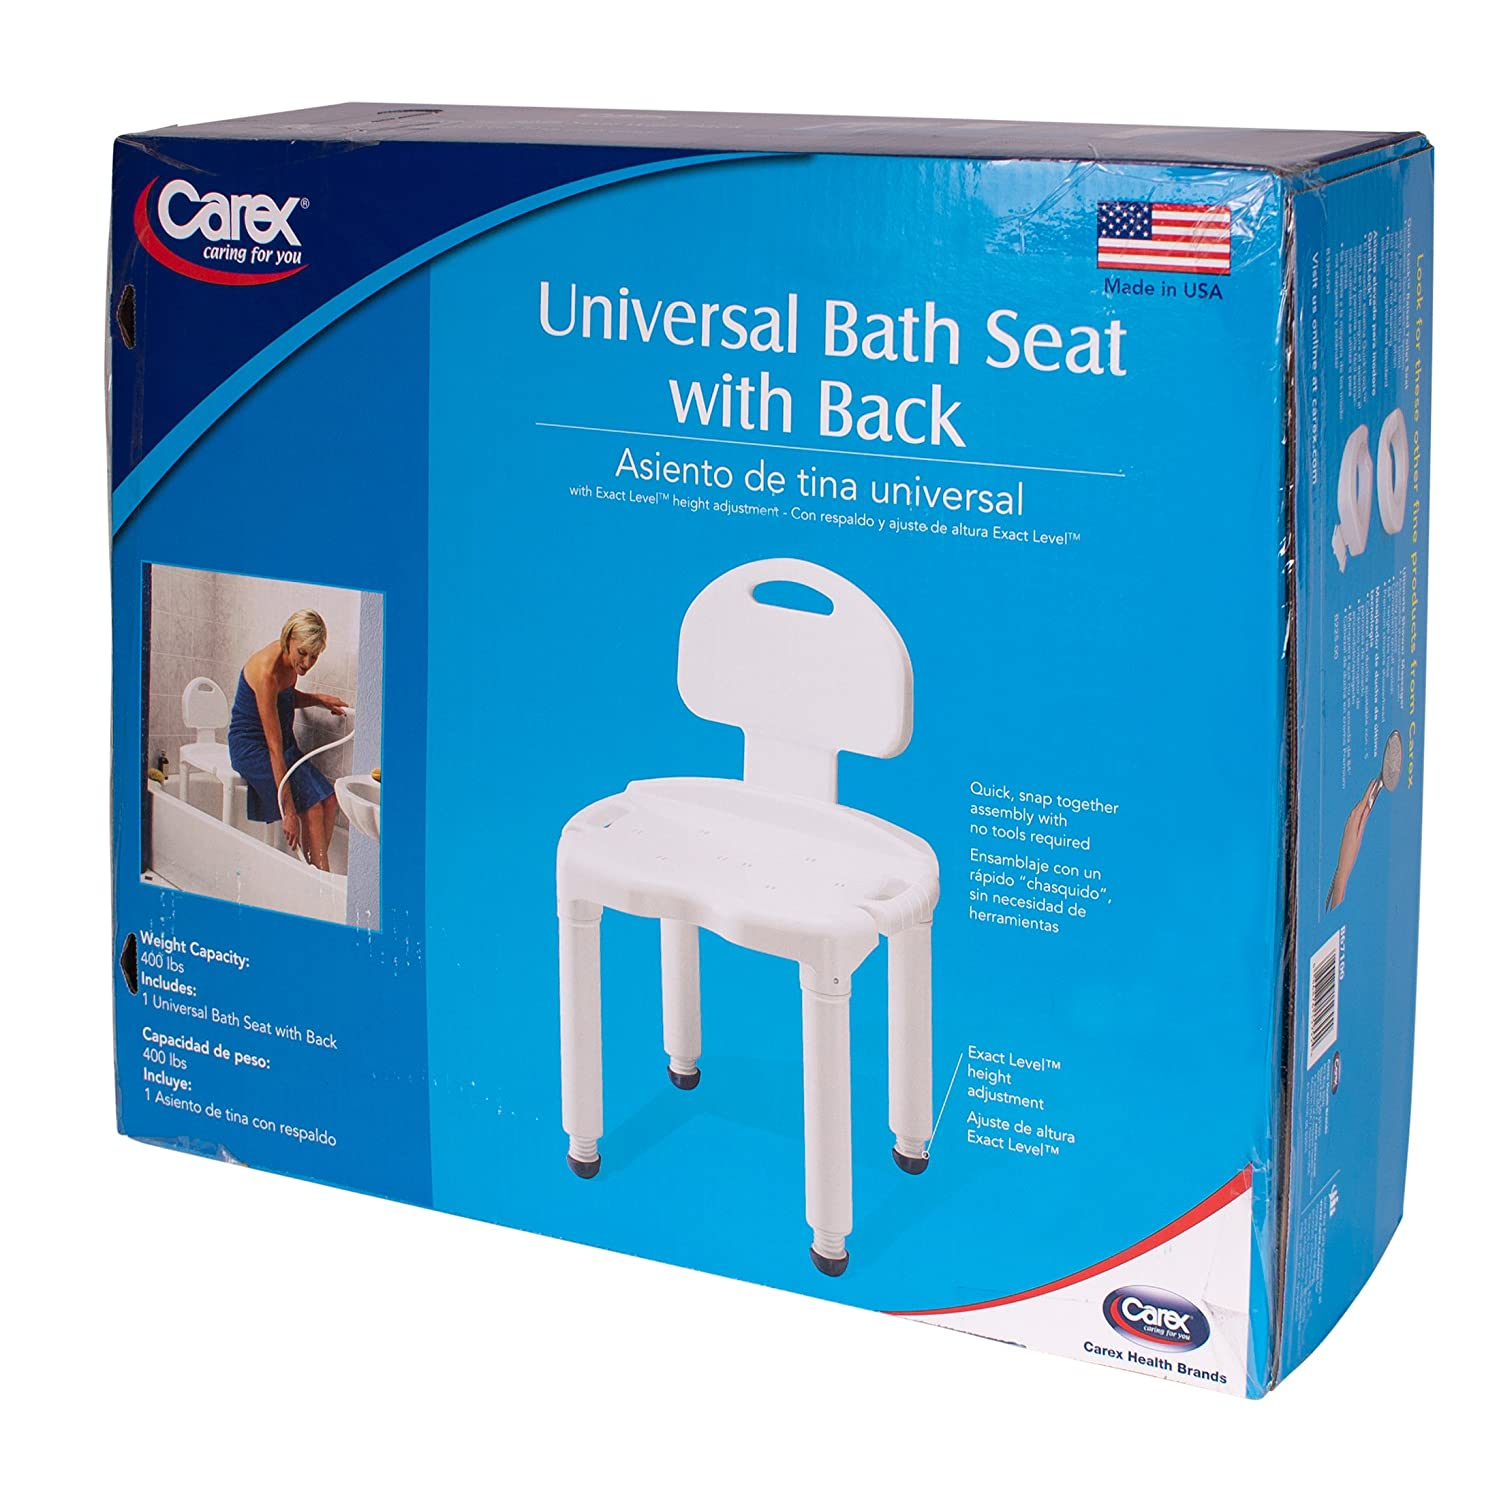 Amazon.com: Carex Universal Bath Bench with Back, with Support for ...